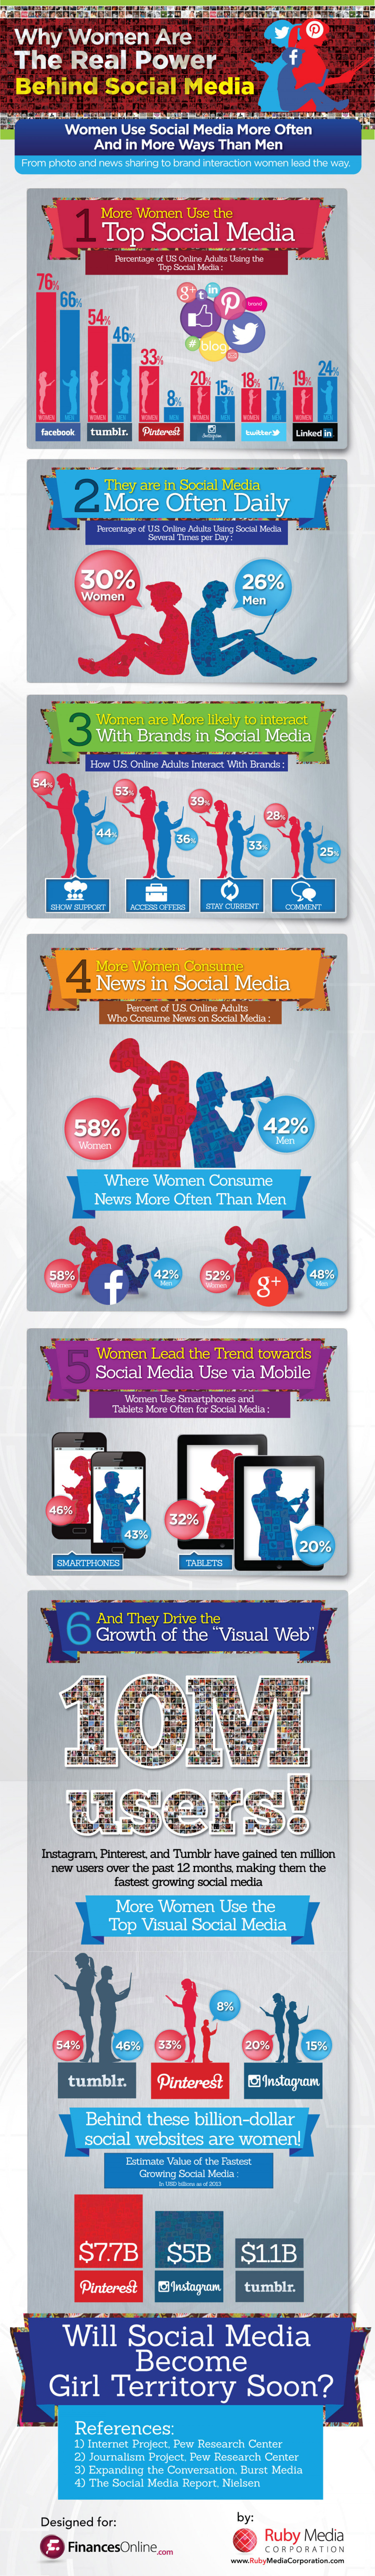 Why Women Are The Real Power Behind Social Media Infographic